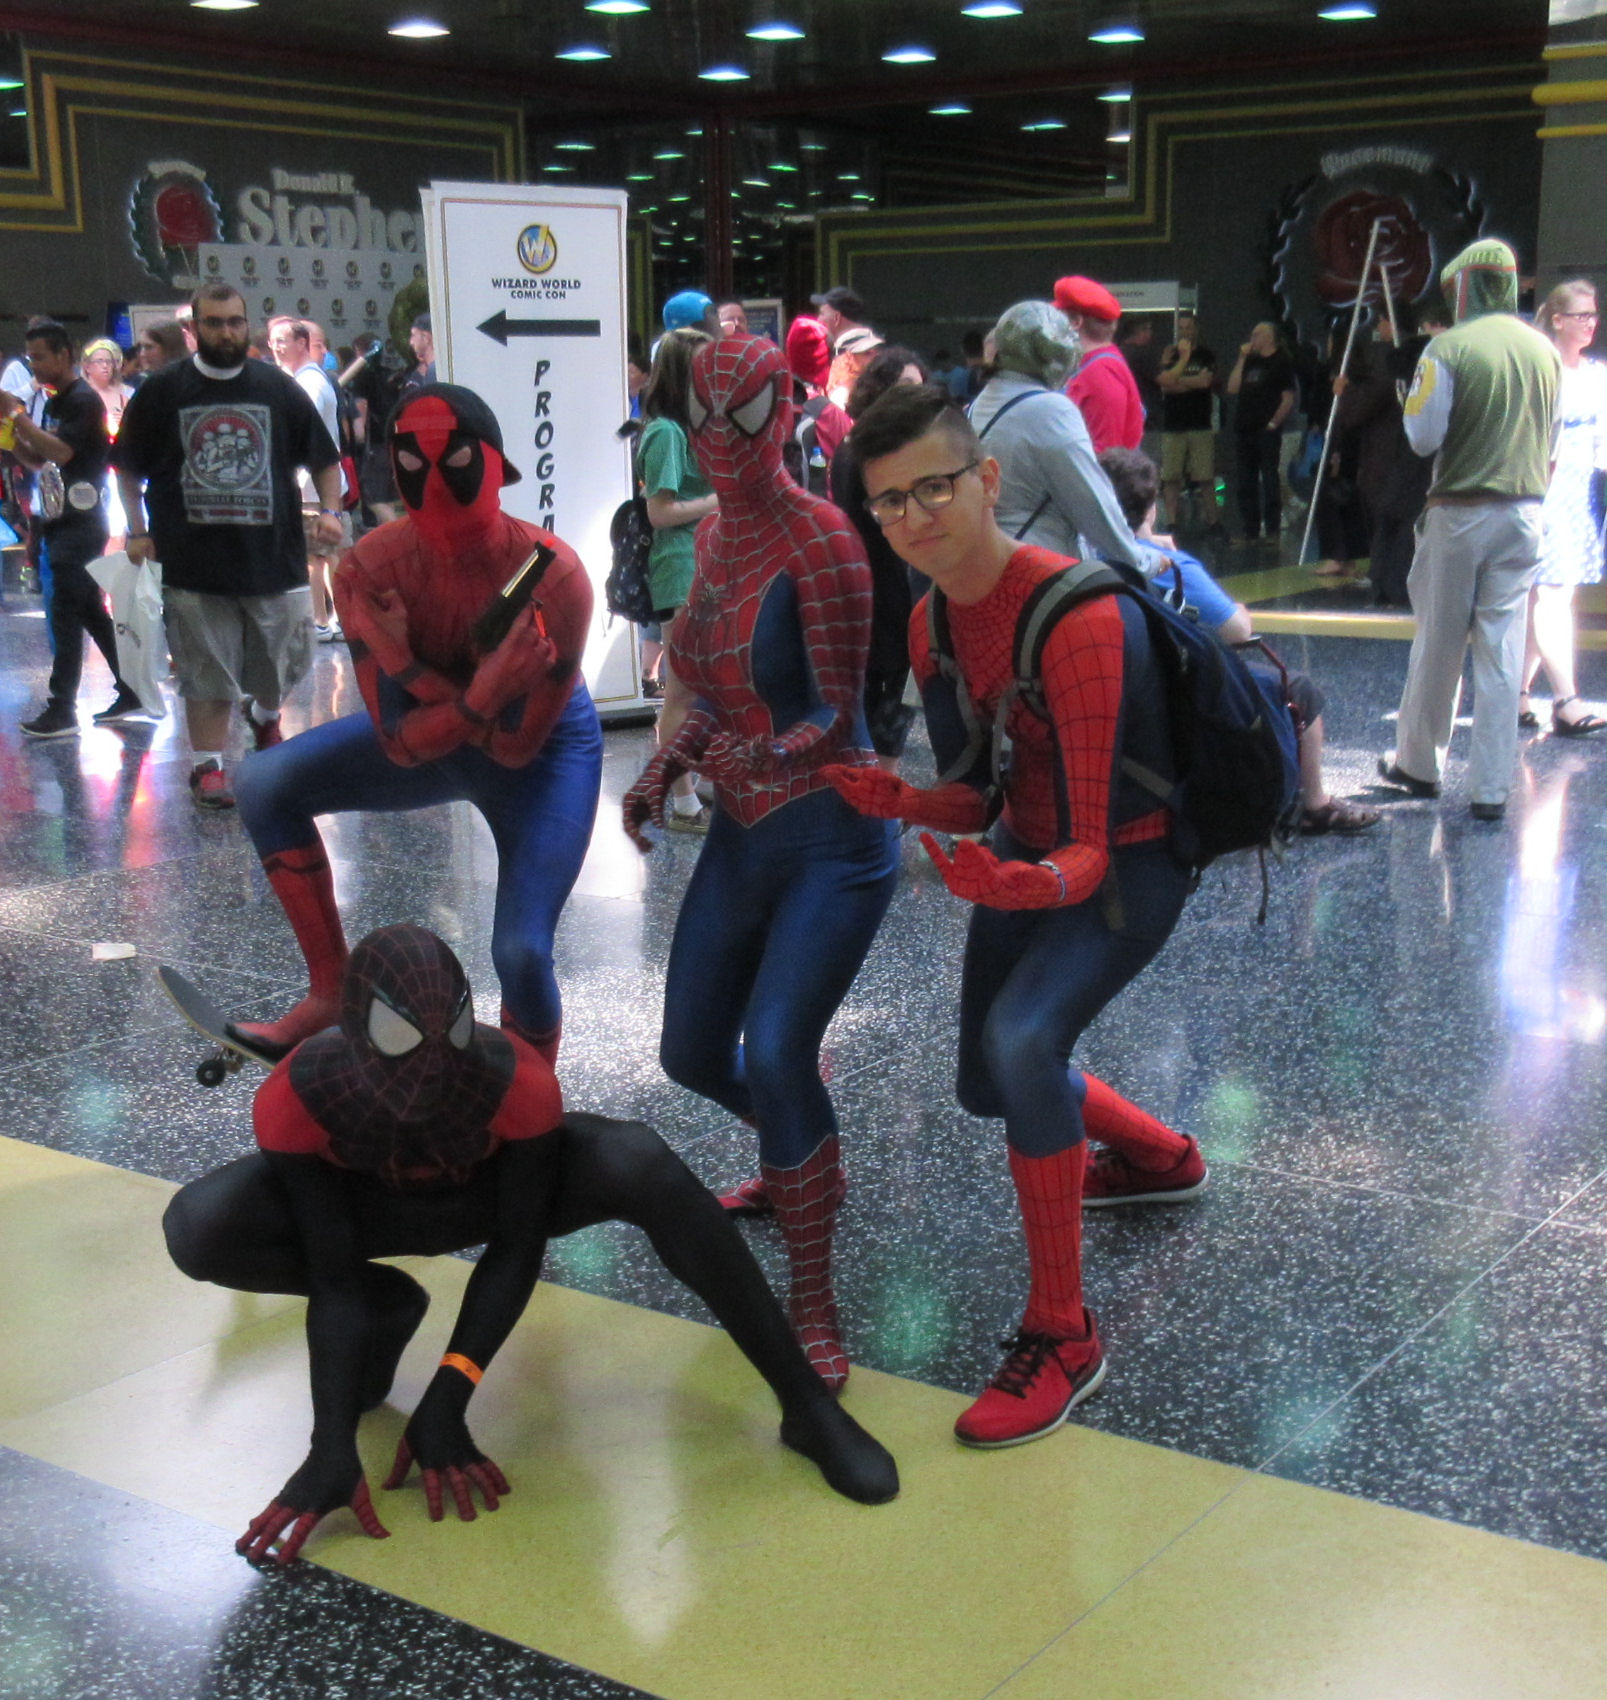 Wizard World Chicago 2016 Photos, Part 3: Marvel Comics Cosplay! « Midlife Crisis Crossover!